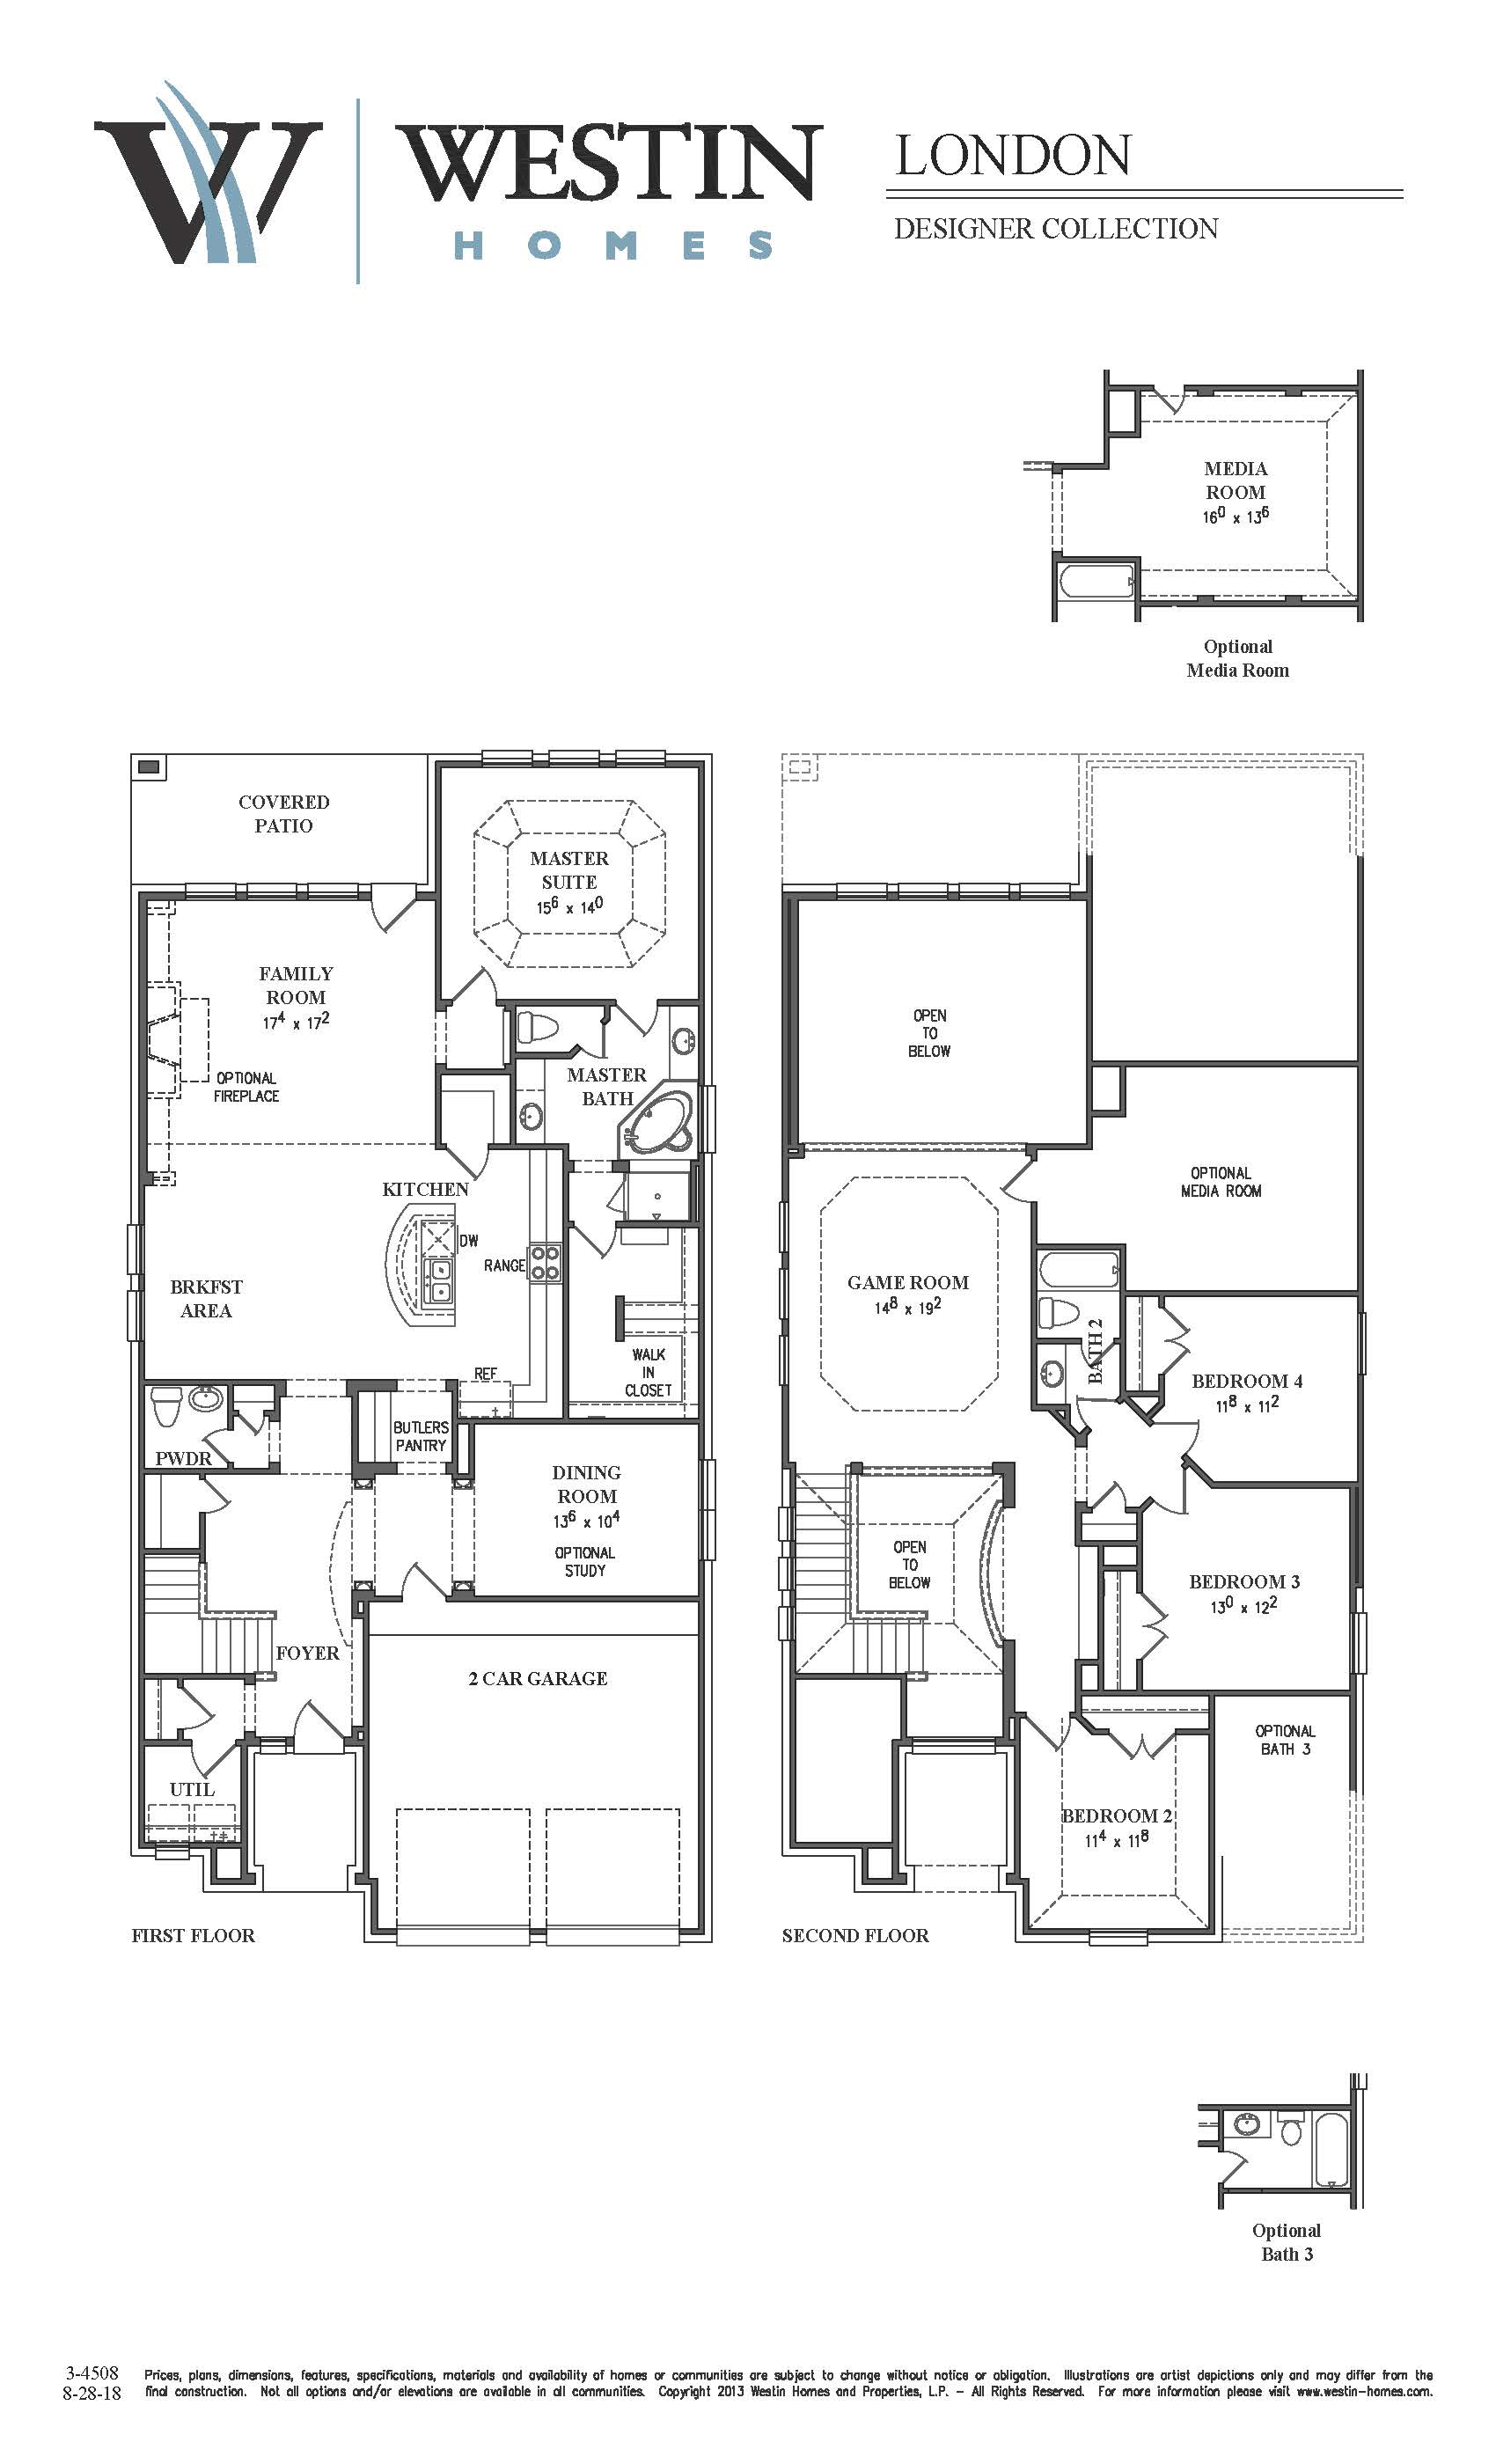 Westin homes floor plans awesome 7818 sydney bay court for Westin homes floor plans